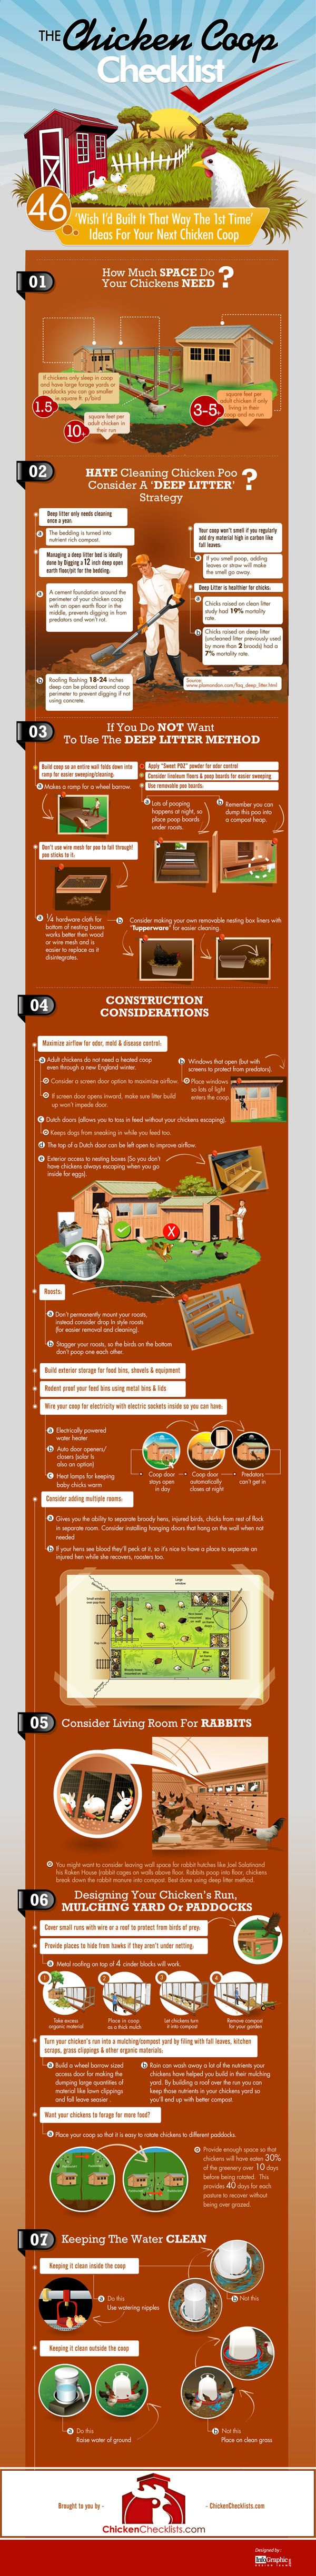 Ready to build your chicken coop? Check out this checklist | DIY homesteading projects at survivallife.com #DIY #homesteading #homesteadingideas